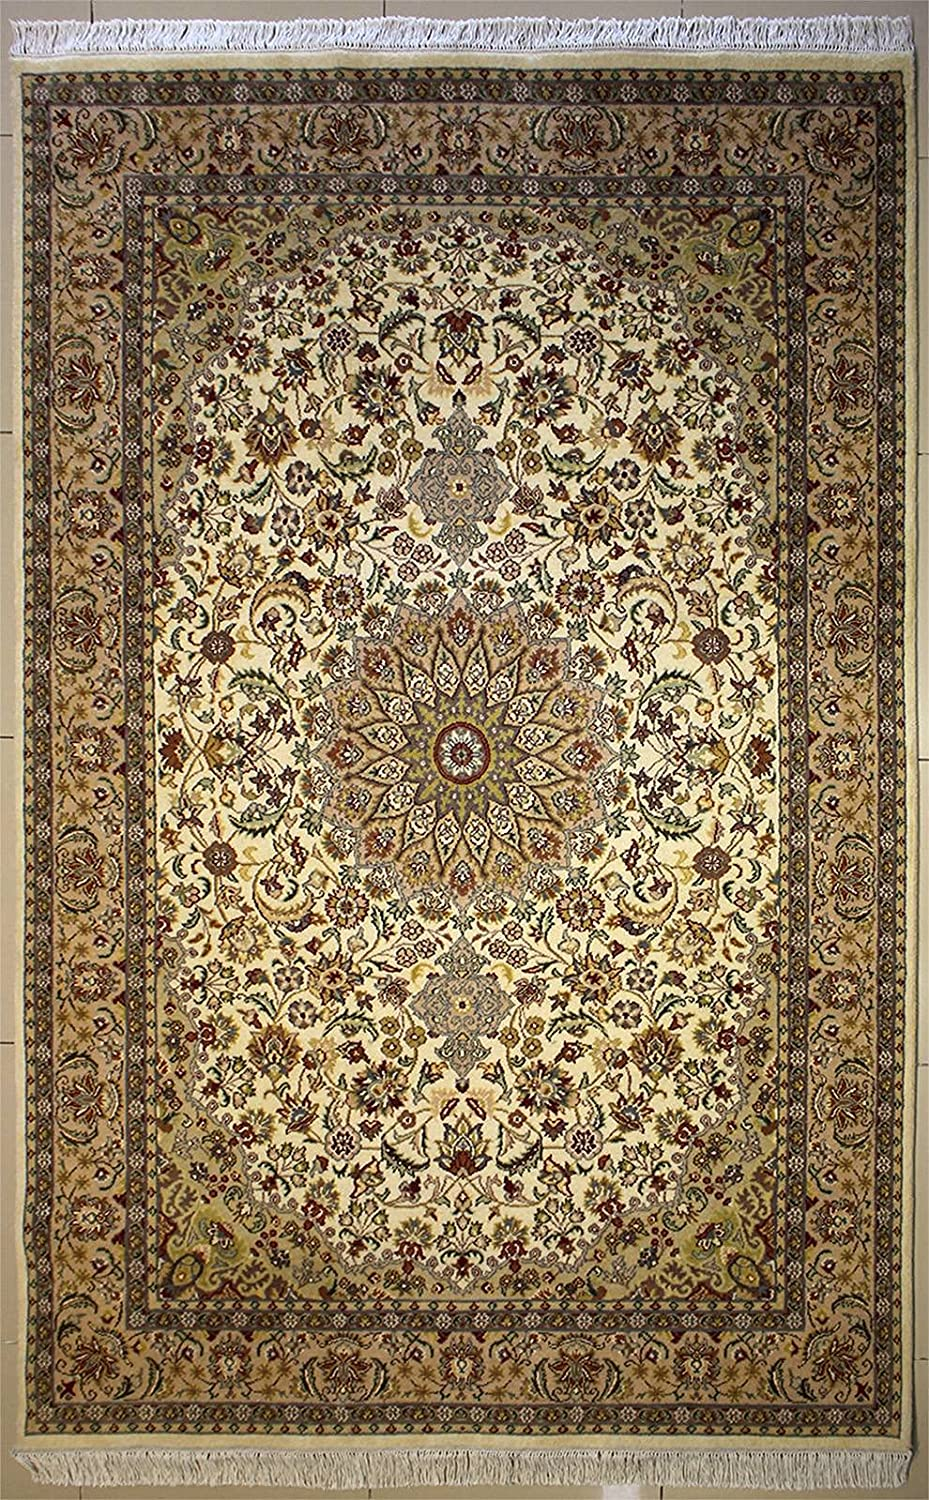 RugsTC 6'1 Regular discount x 9'3 Pak Persian Area Rug Floral Inventory cleanup selling sale De - Pile Wool with